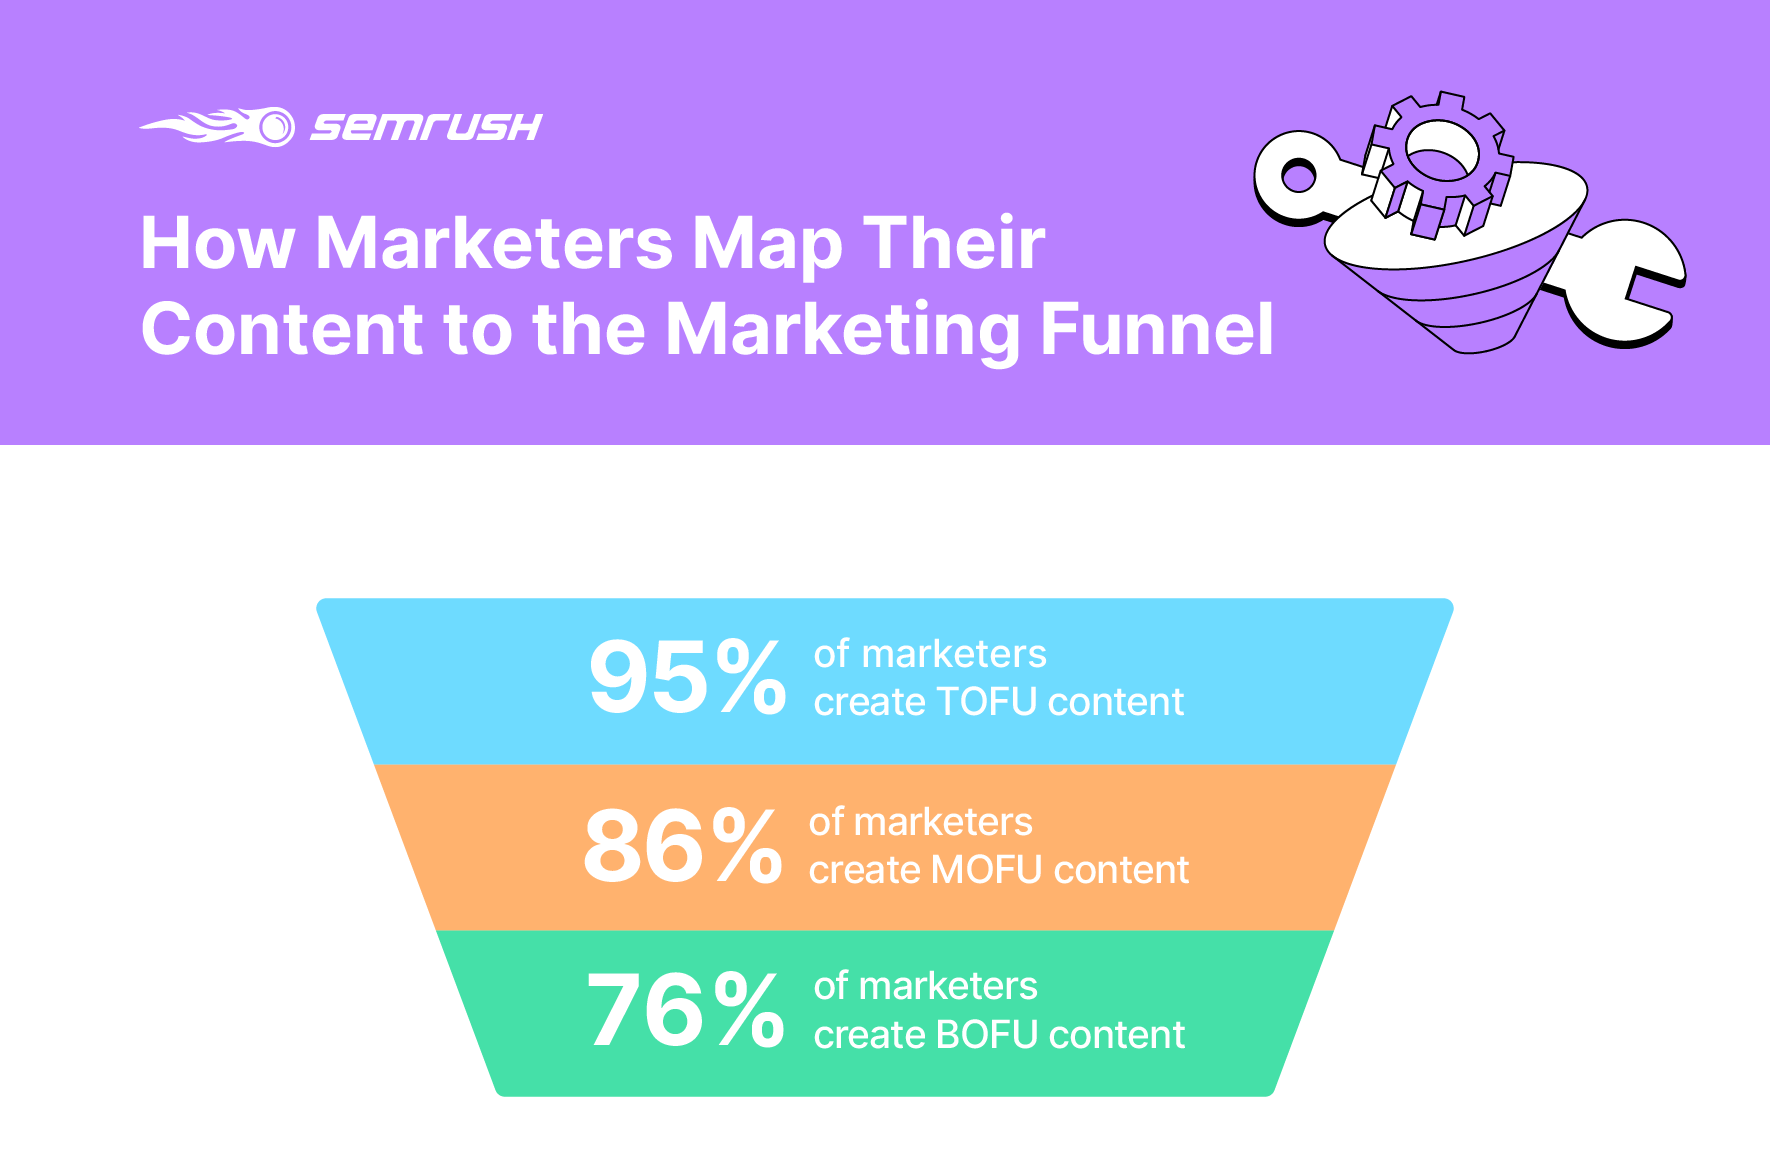 How marketers map their content to the funnel